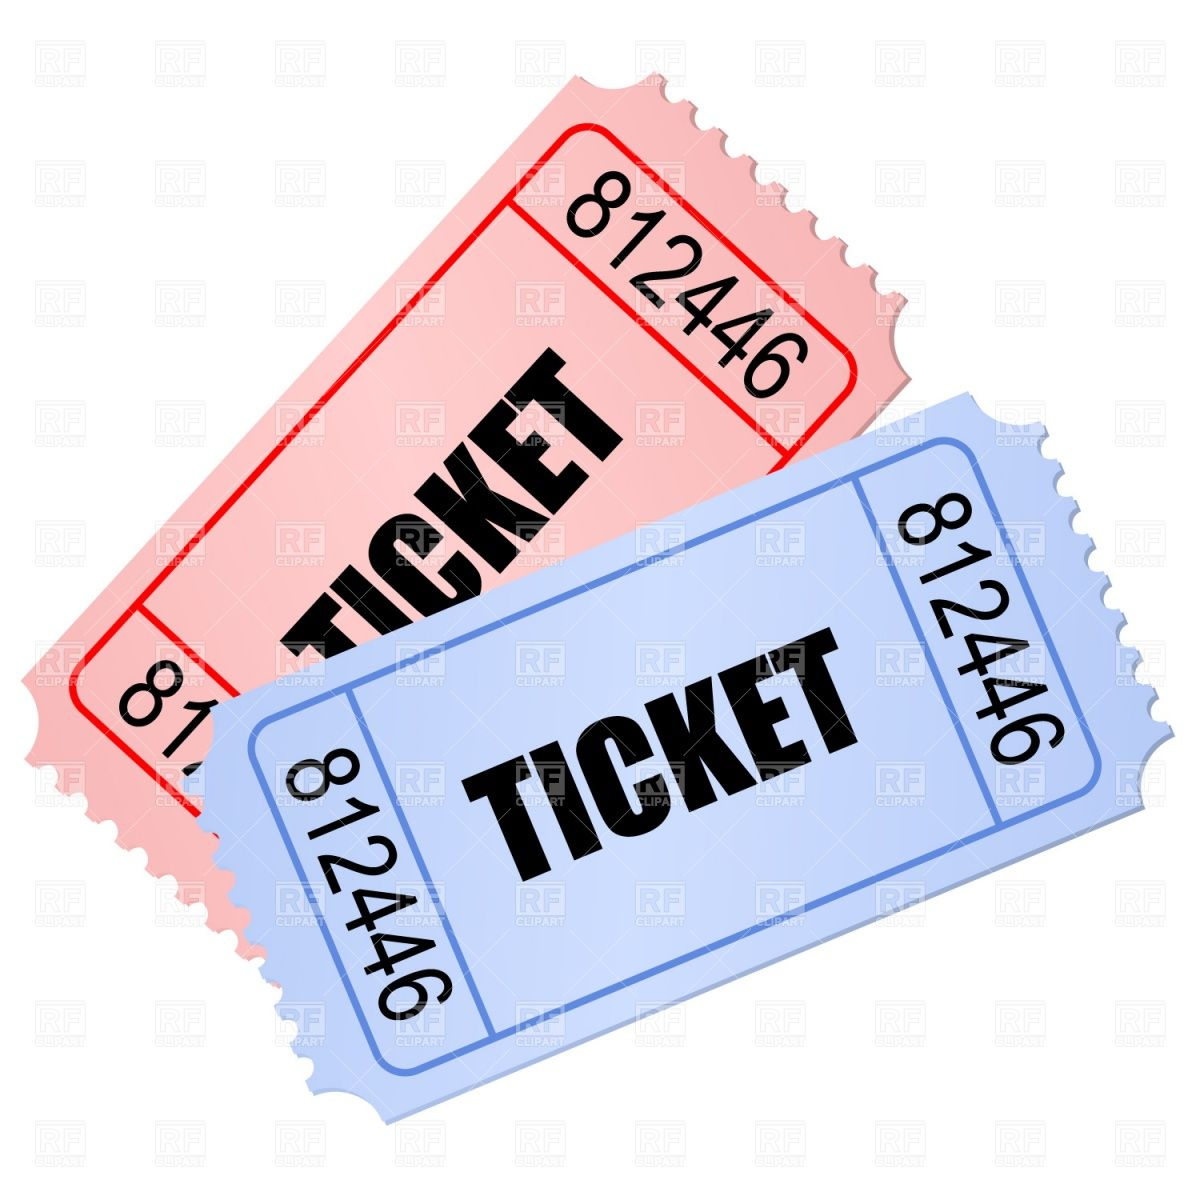 clipart royalty free library . Arcade clipart broadway ticket.